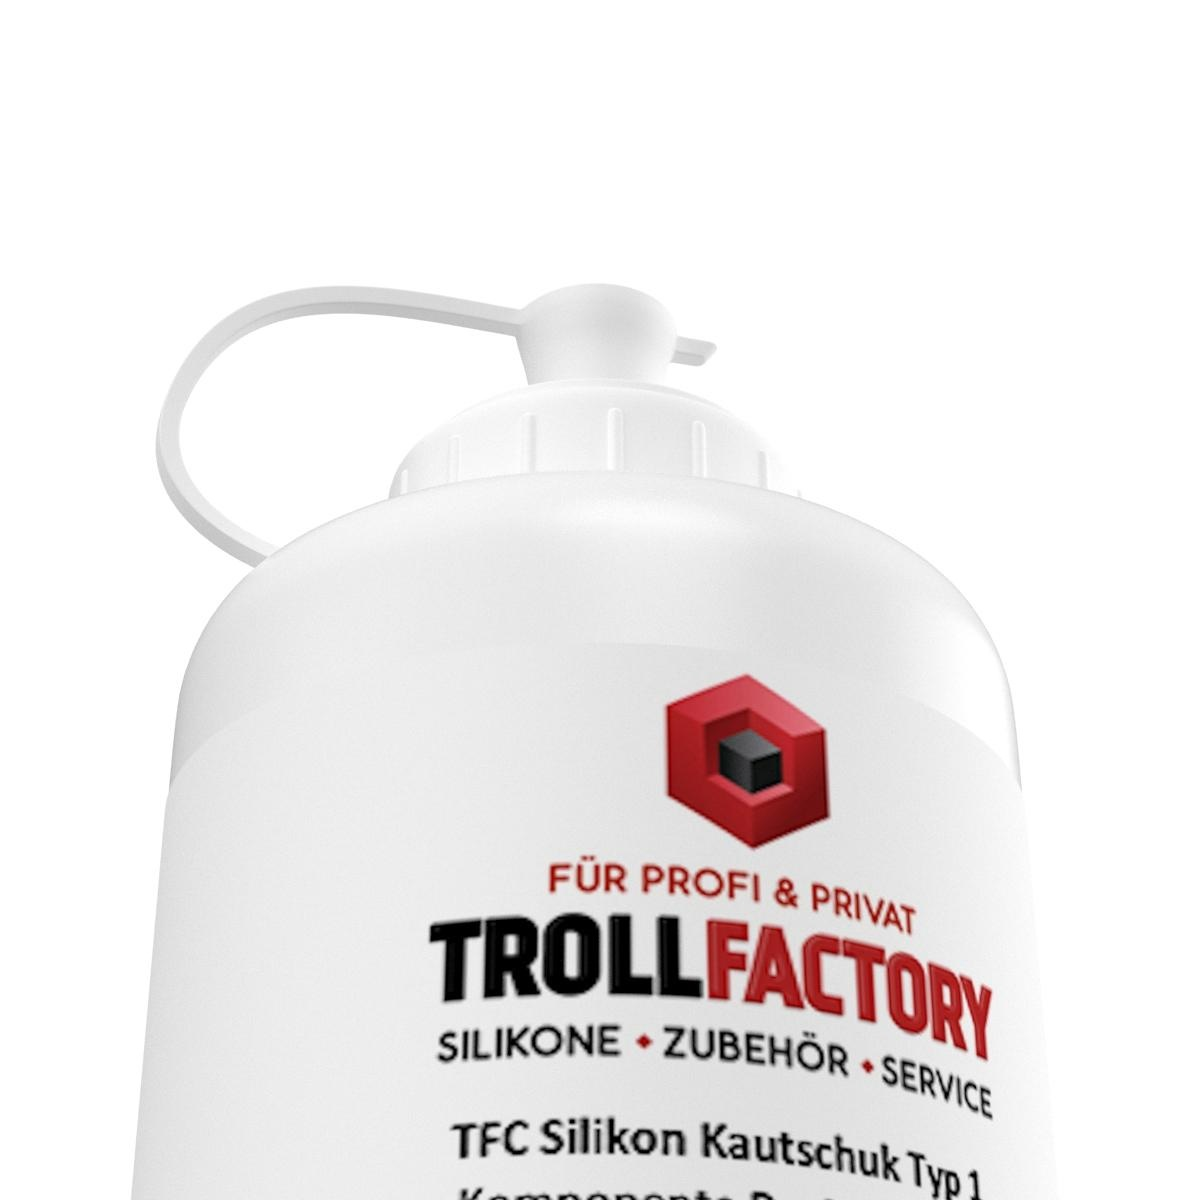 Troll Factory TFC Troll Factory Silicone Rubber Type 1 Afvorm silicone zacht 500g